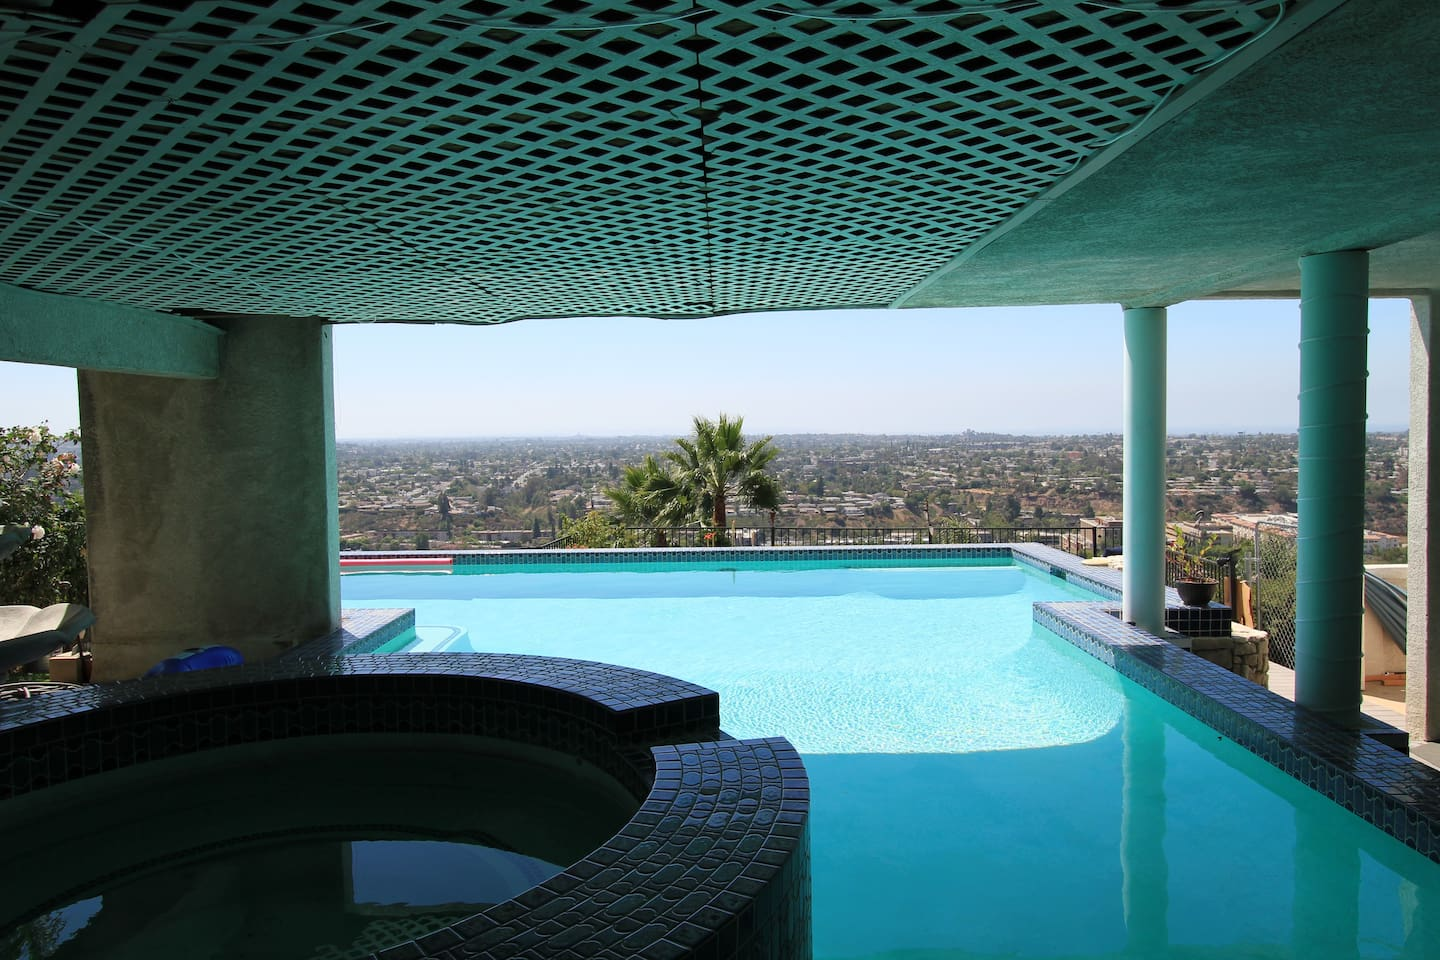 Panoramic View Guest House   San Diego   House. San Diego Vacation Rentals   Beach Houses   Airbnb  California